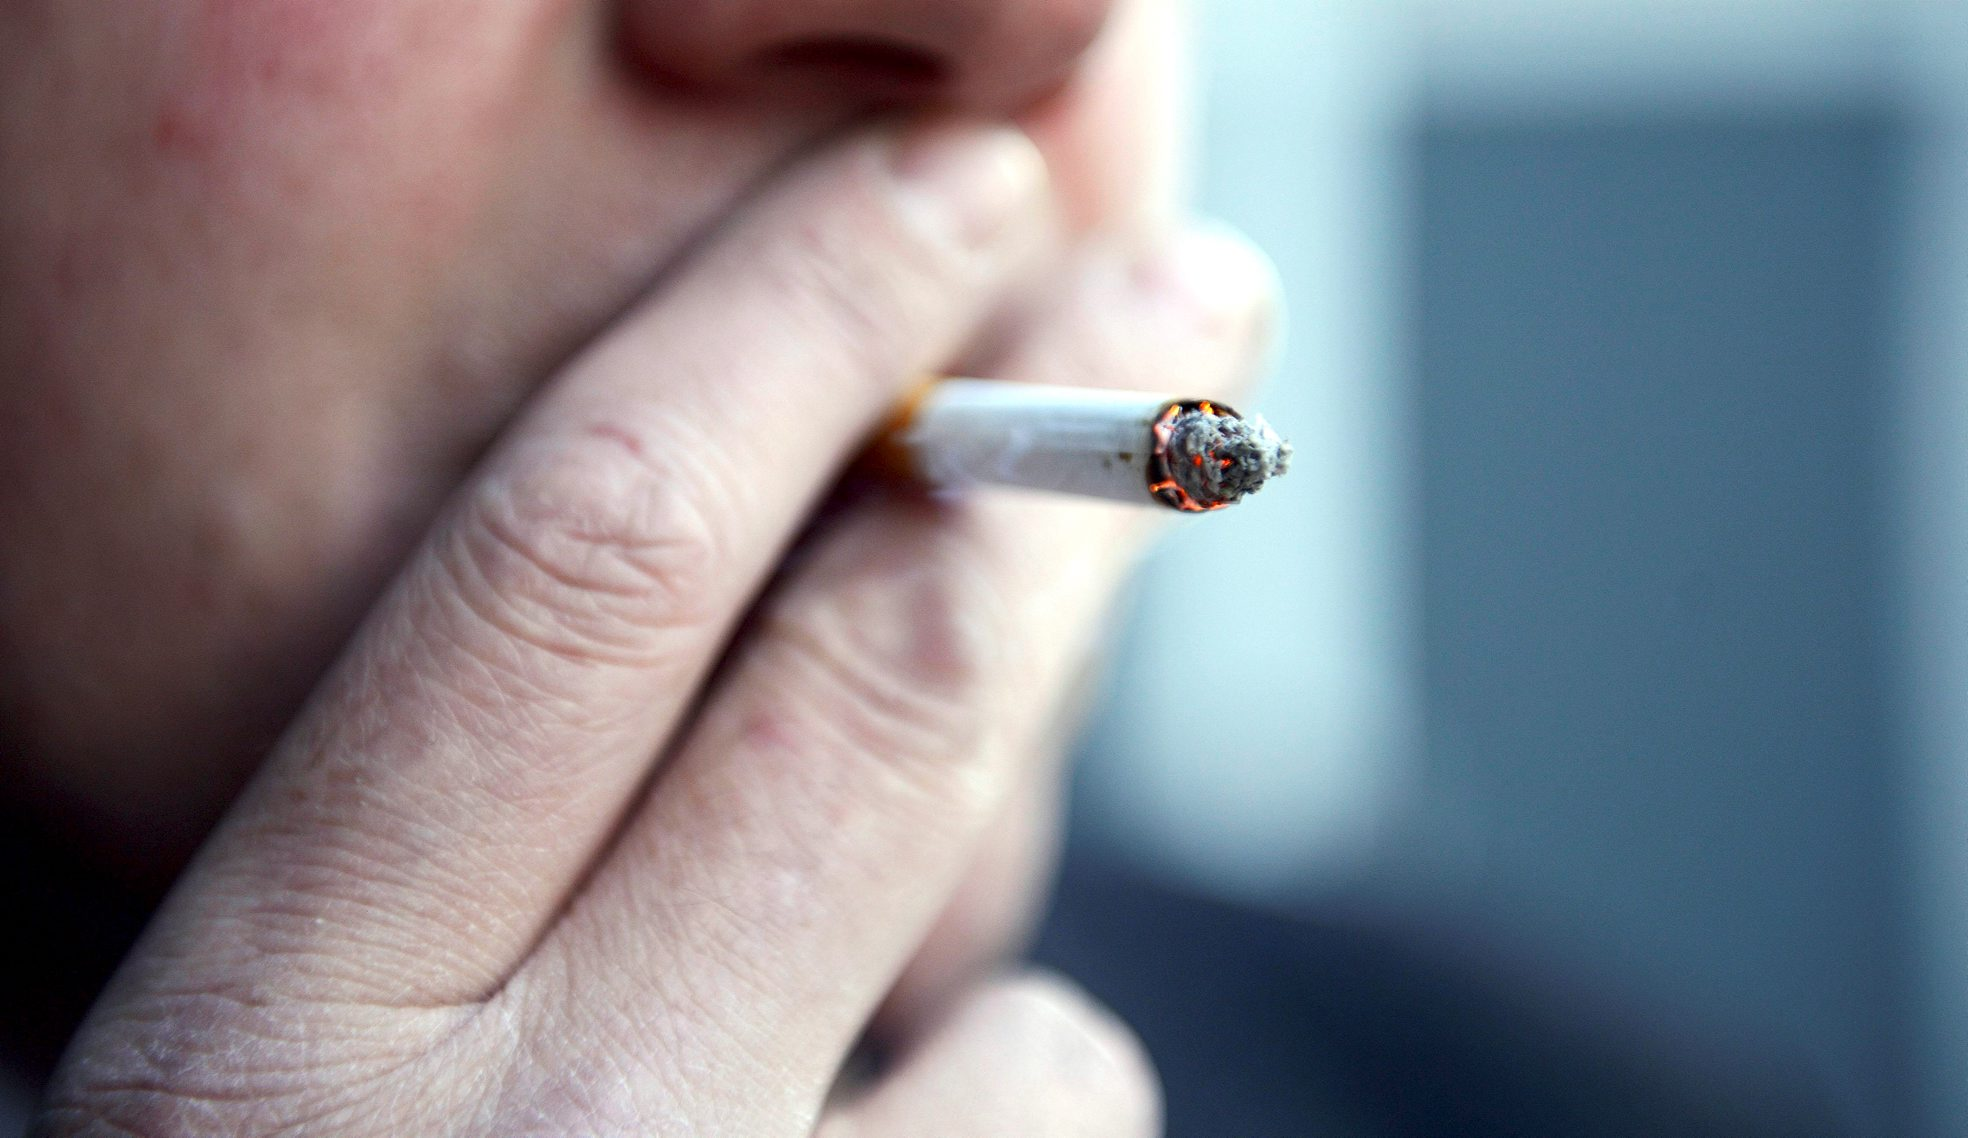 Council won't ban staff from smoking